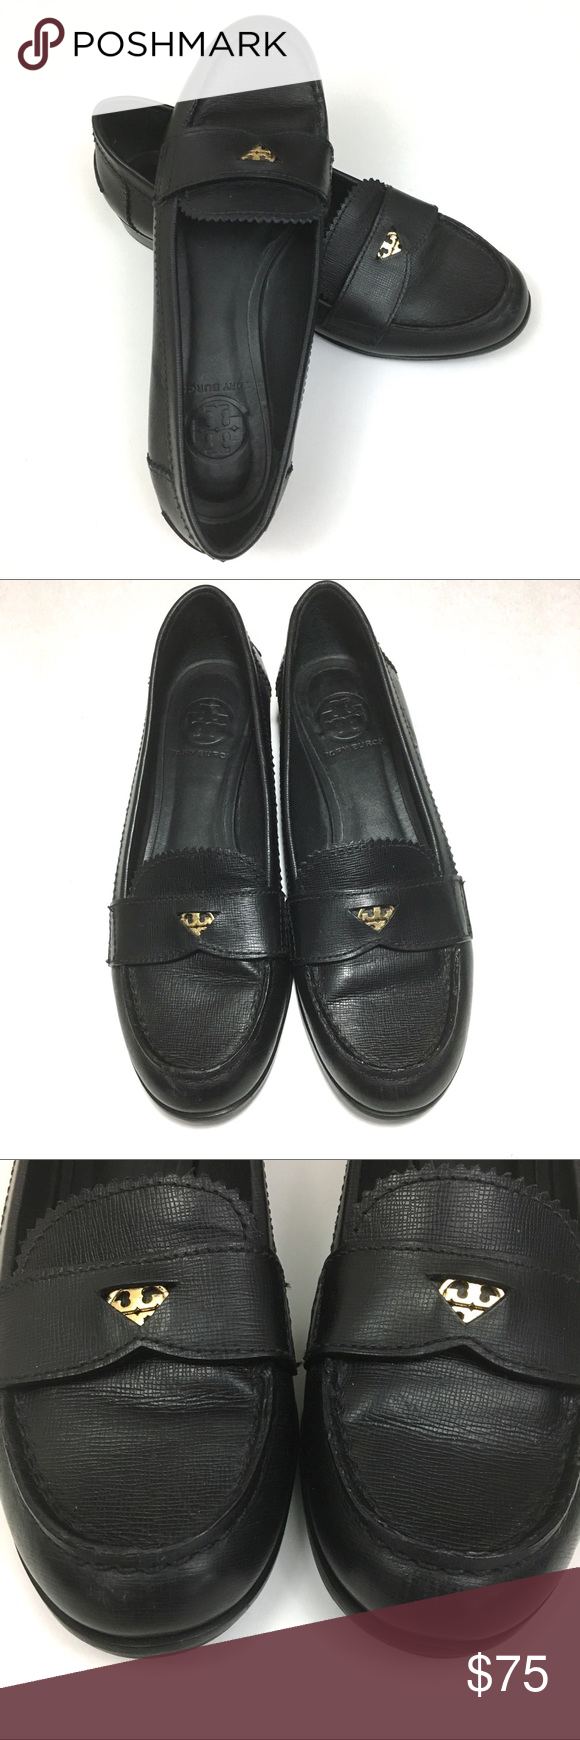 e896235cf2f Tory Burch black leather penny loafer size 7 Host Pick 10 17 Style Crush  Party Brand  Tory Burch Style  Pennie low heel penny loafer Color  black  Size  7 M ...